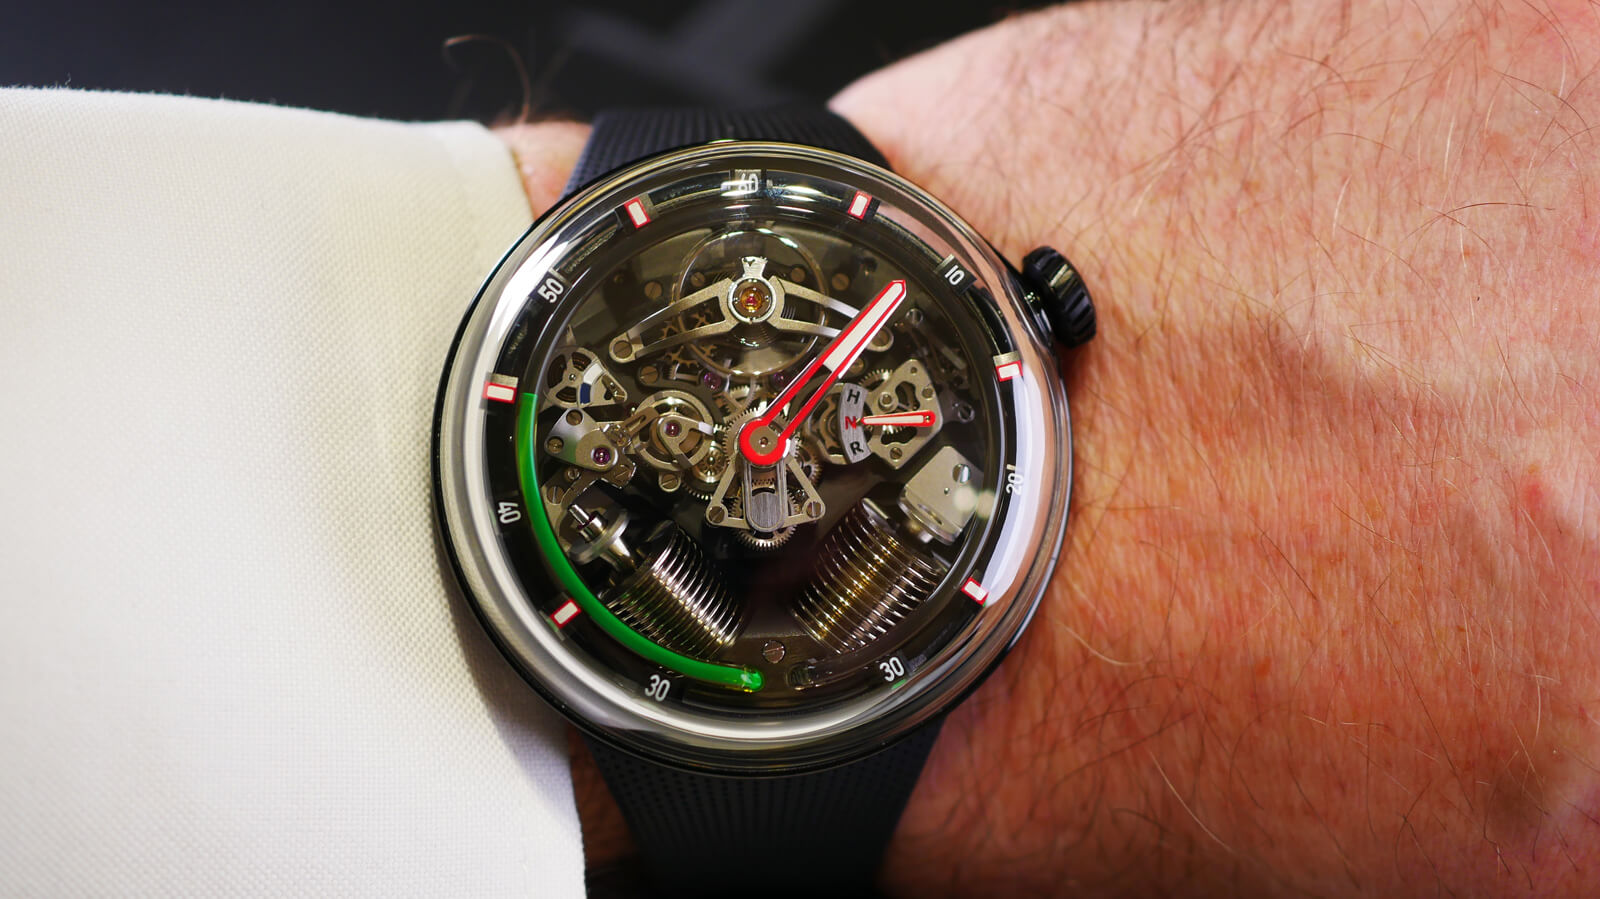 HYT H20 - hand-wound watch with fluidic indication of hours